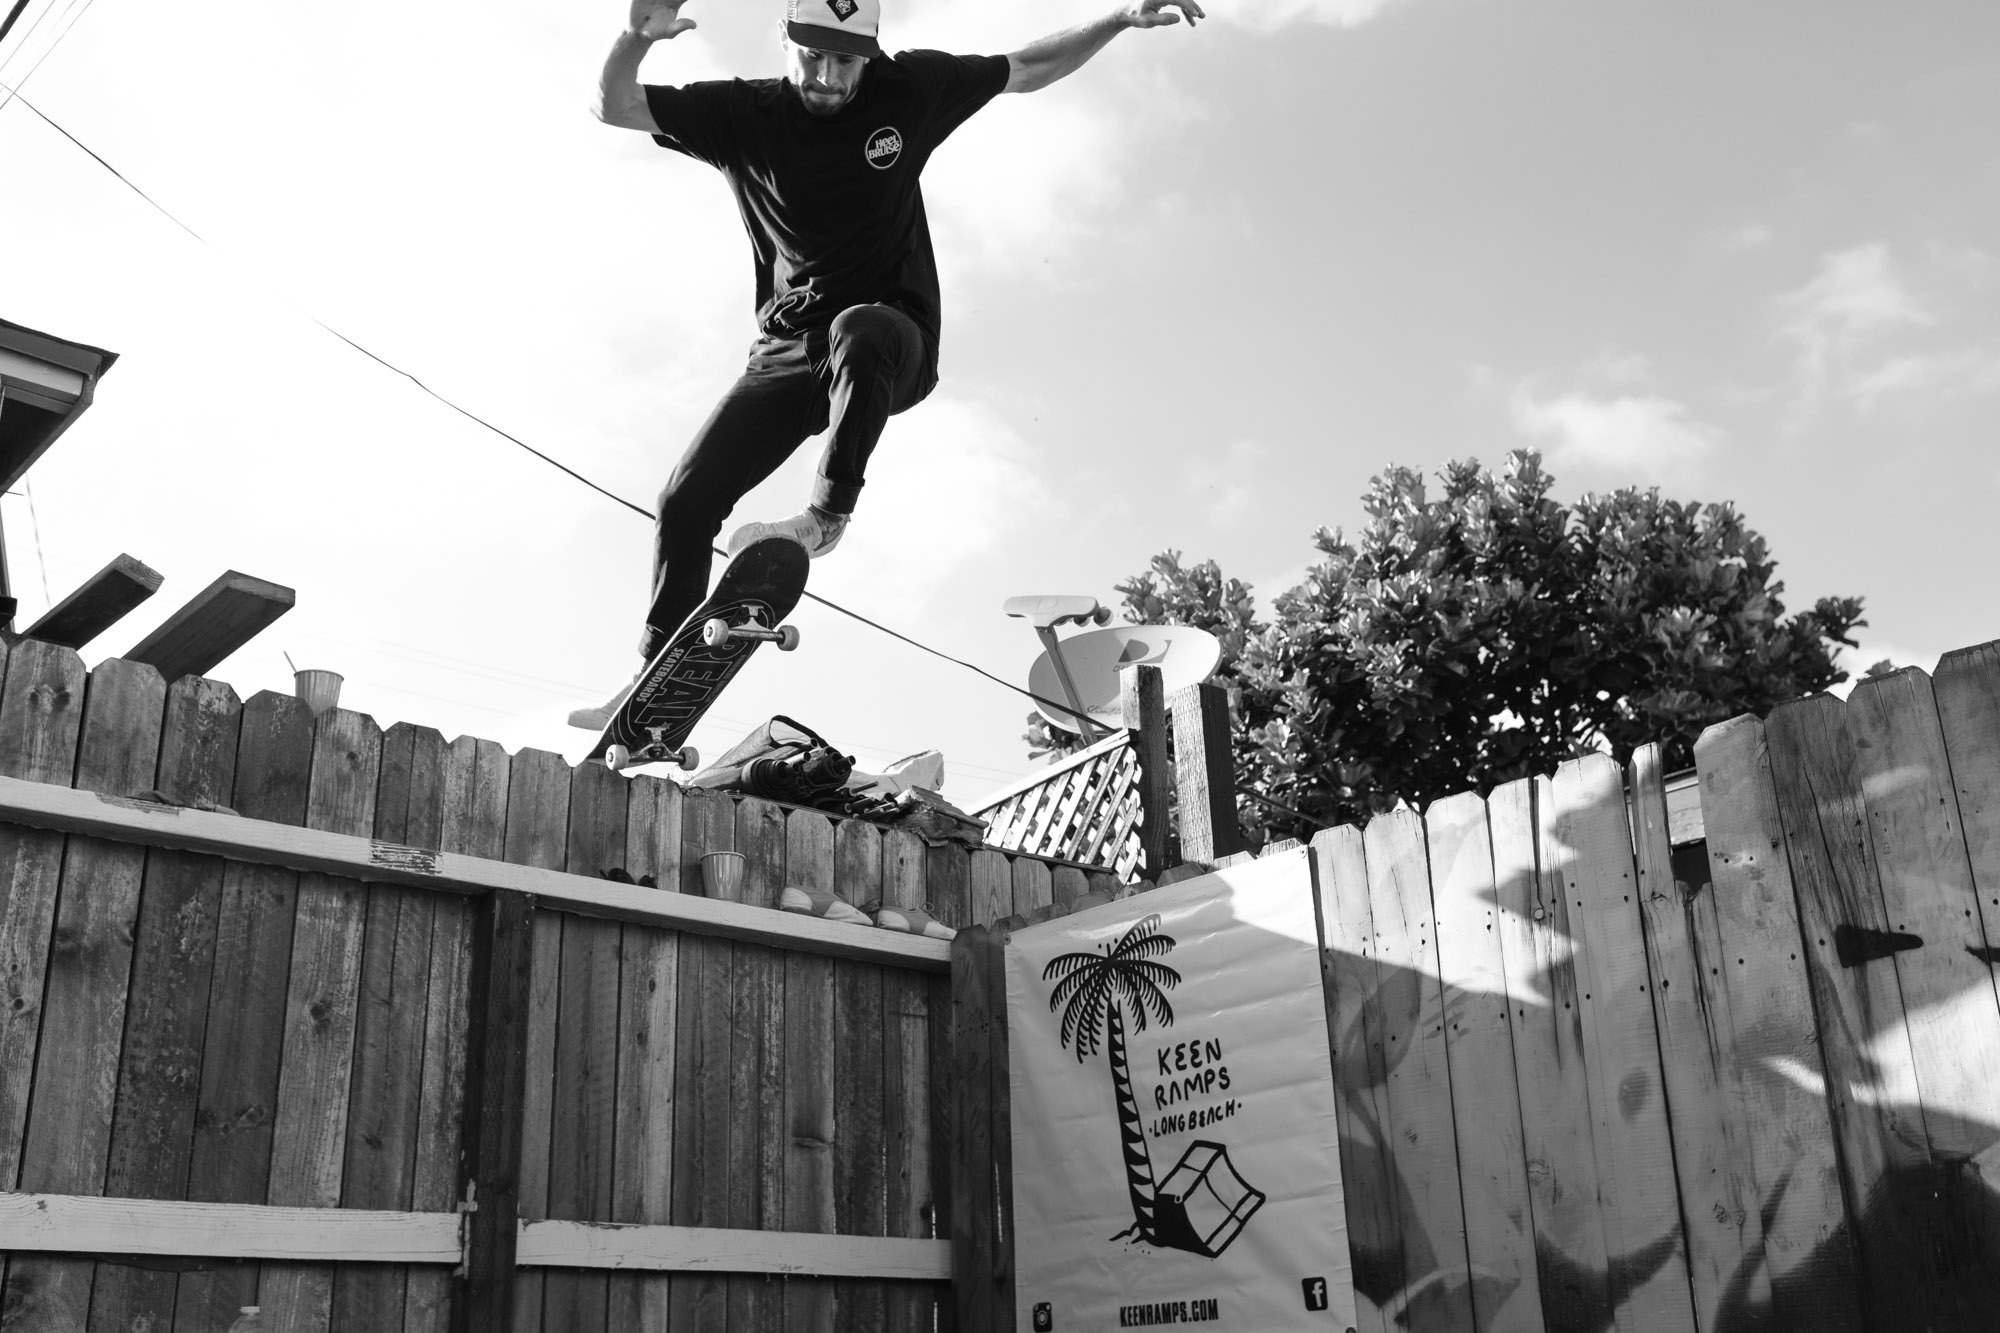 Cory dropping into a miniramp from the neighbors roof on his skateboard